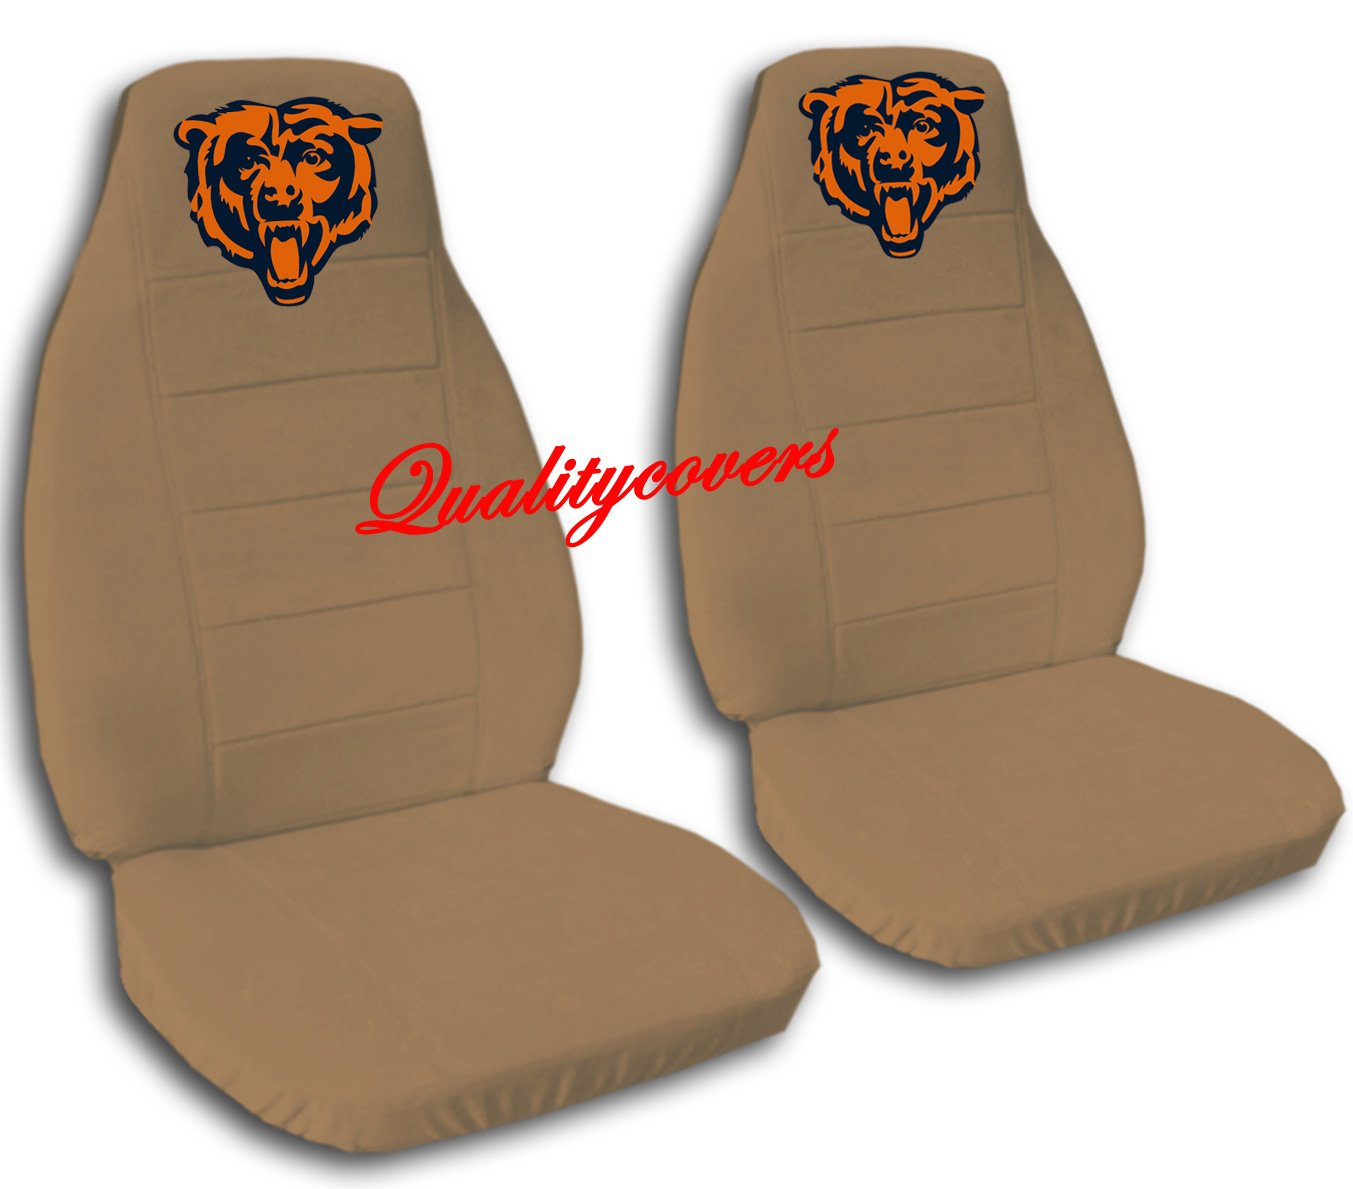 2 Brown Chicago seat covers for a 2007 to 2012 Chevrolet Silverado. Side airbag friendly.